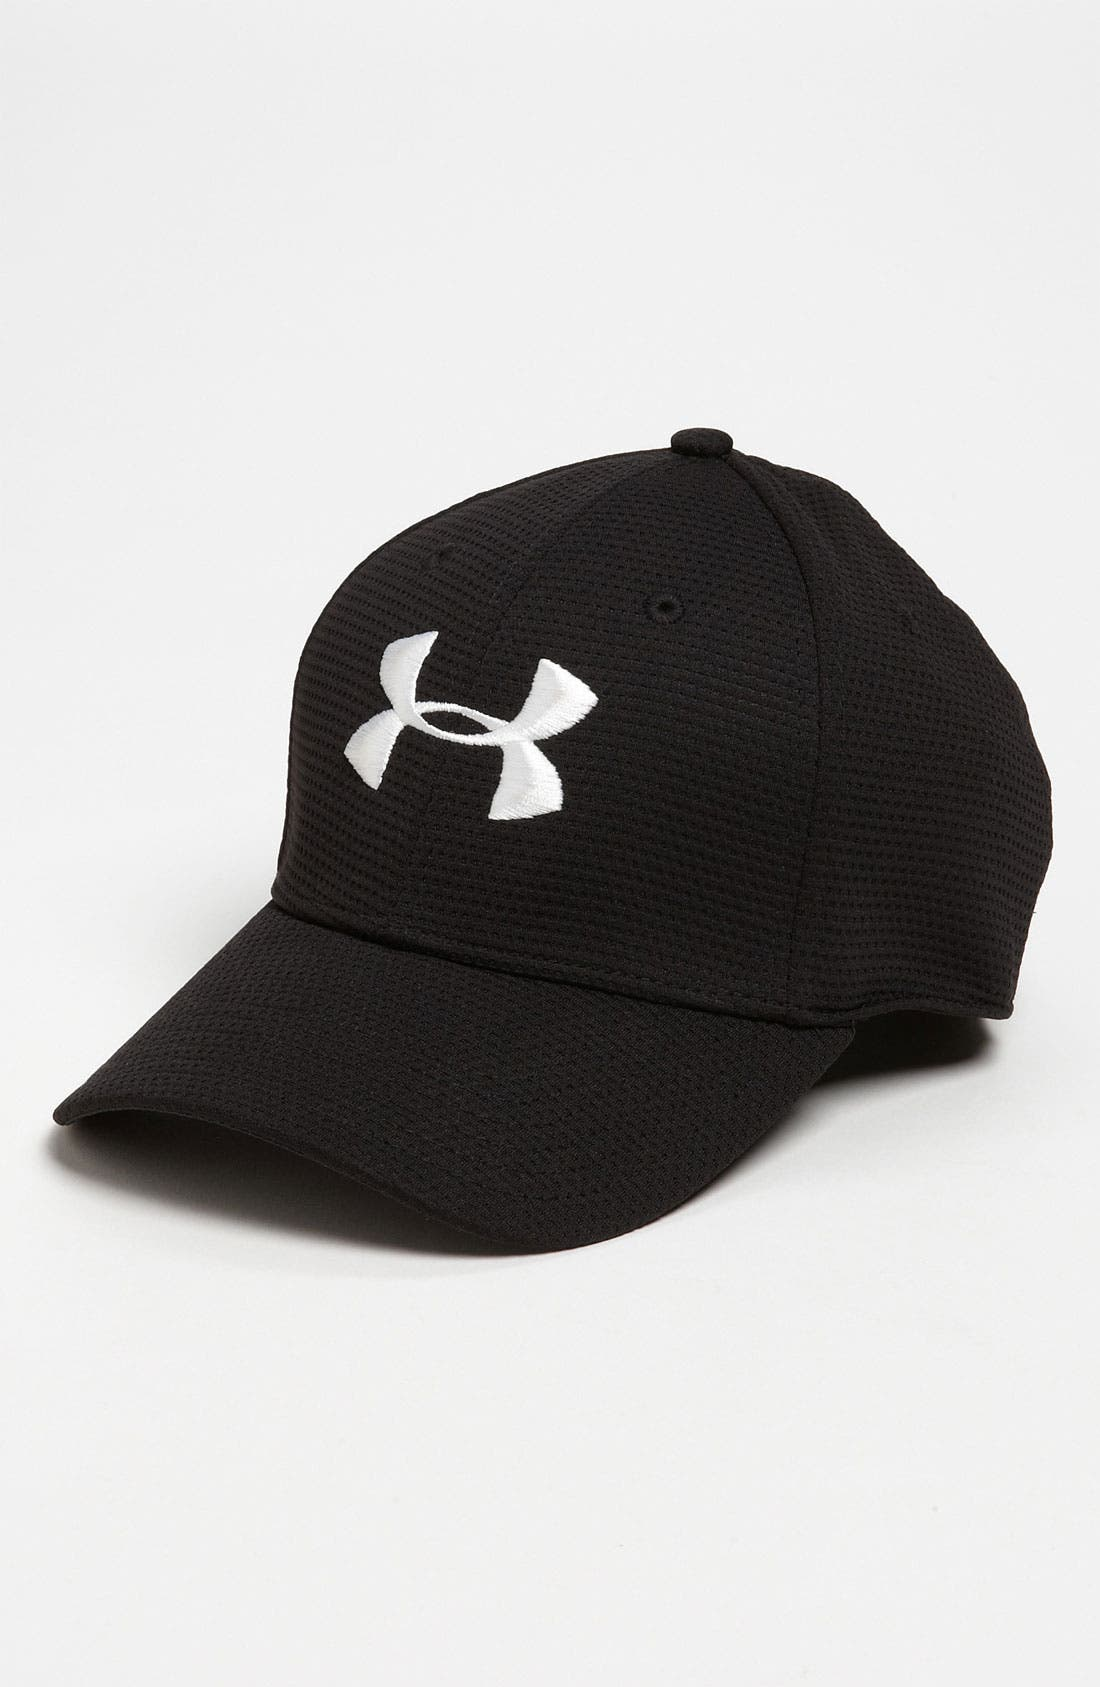 Alternate Image 1 Selected - Under Armour 'Blitzing' Stretch Fit Baseball Cap